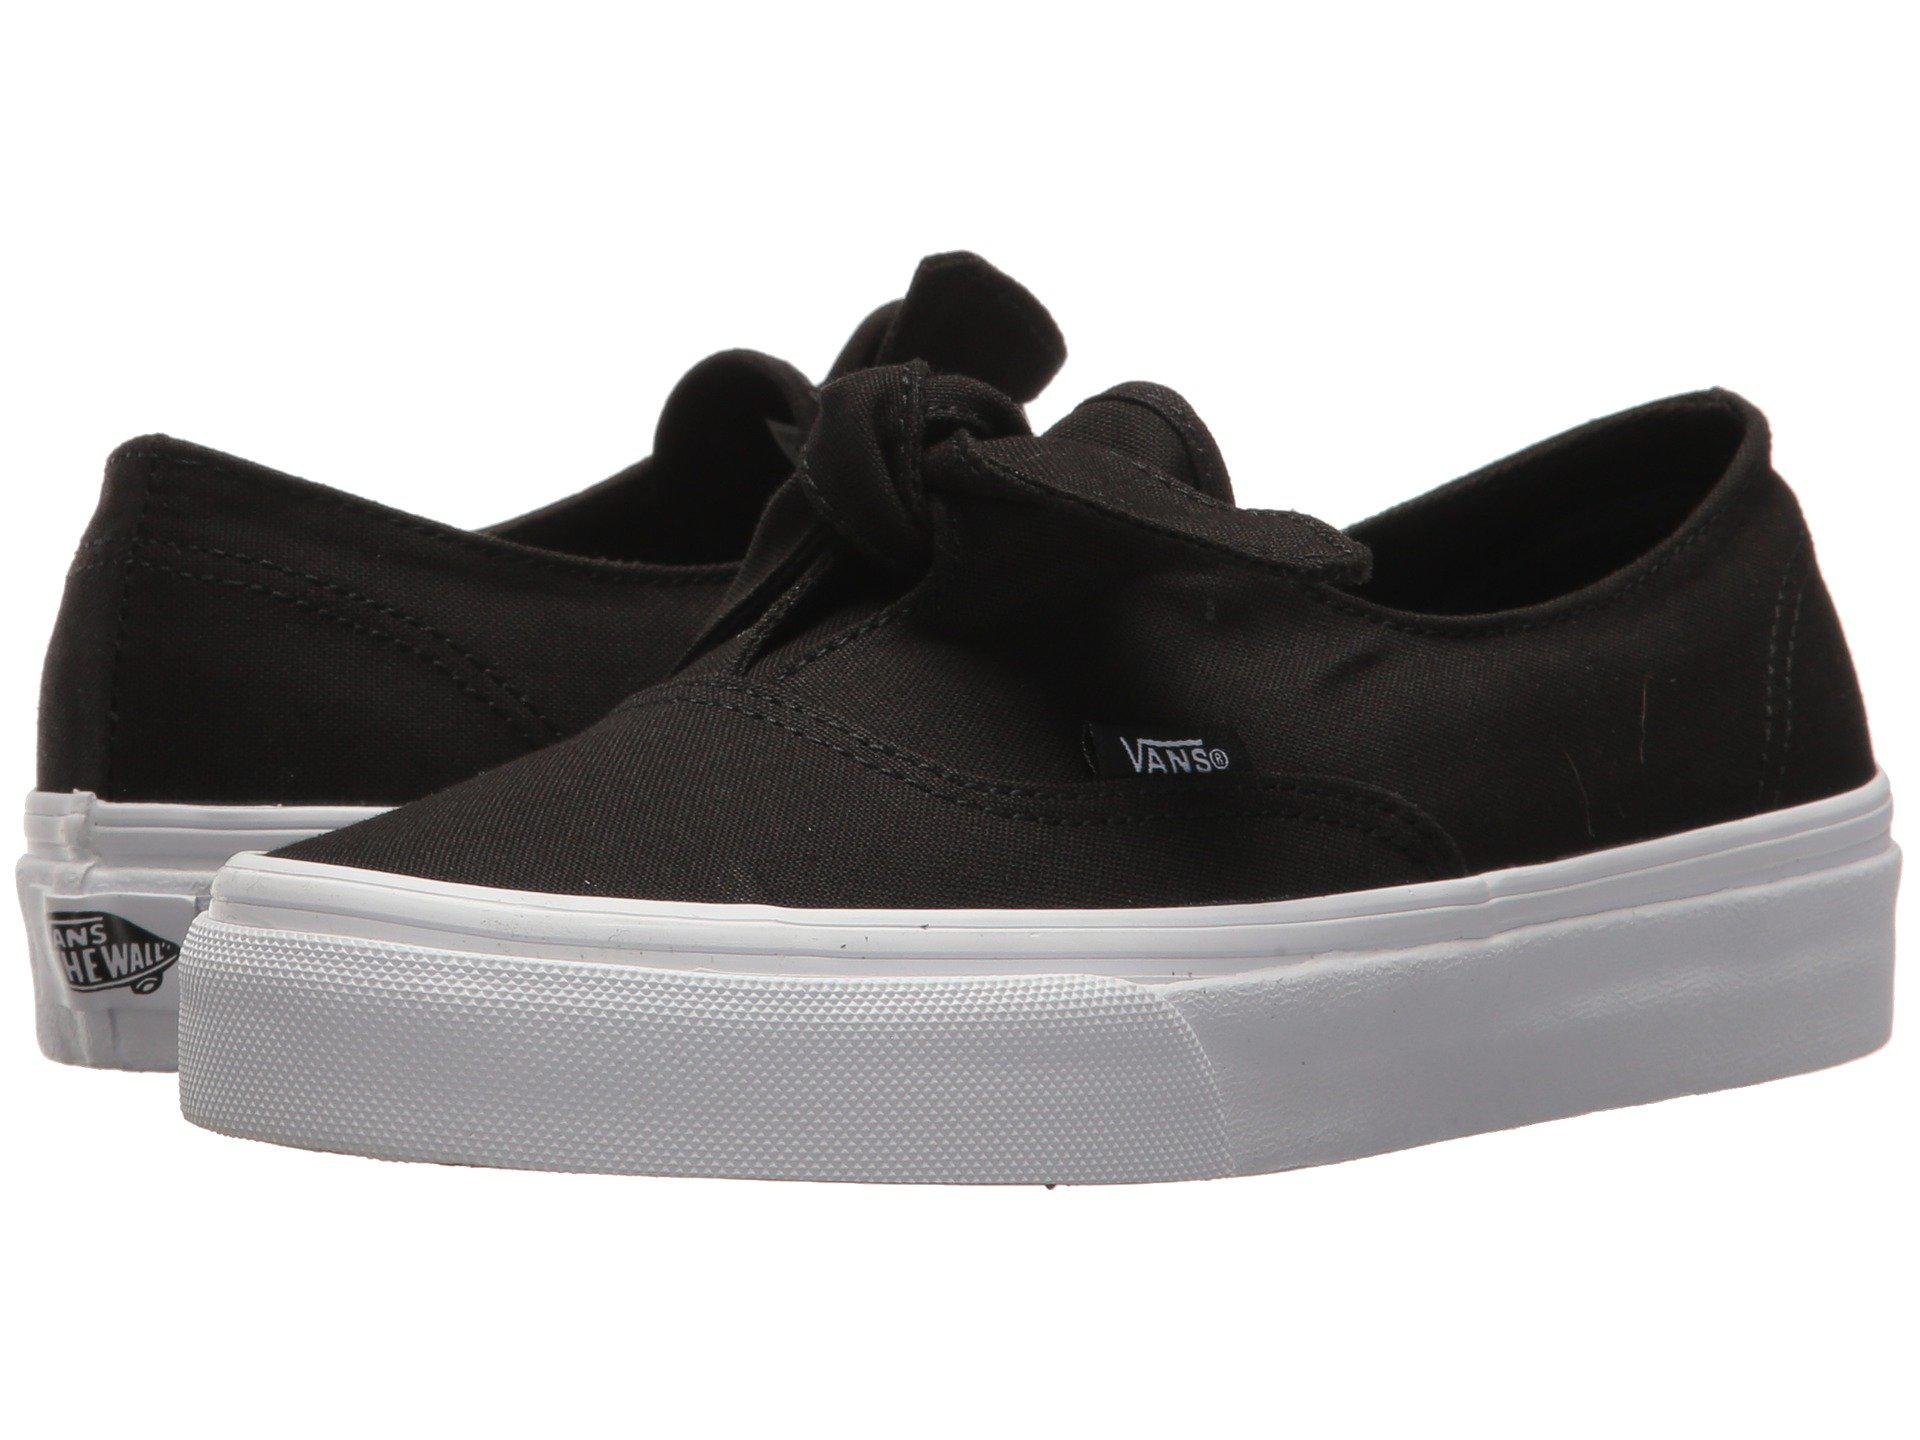 Vans 'authentic Knotted' Canvas Skate Slip-ons in Black - Lyst